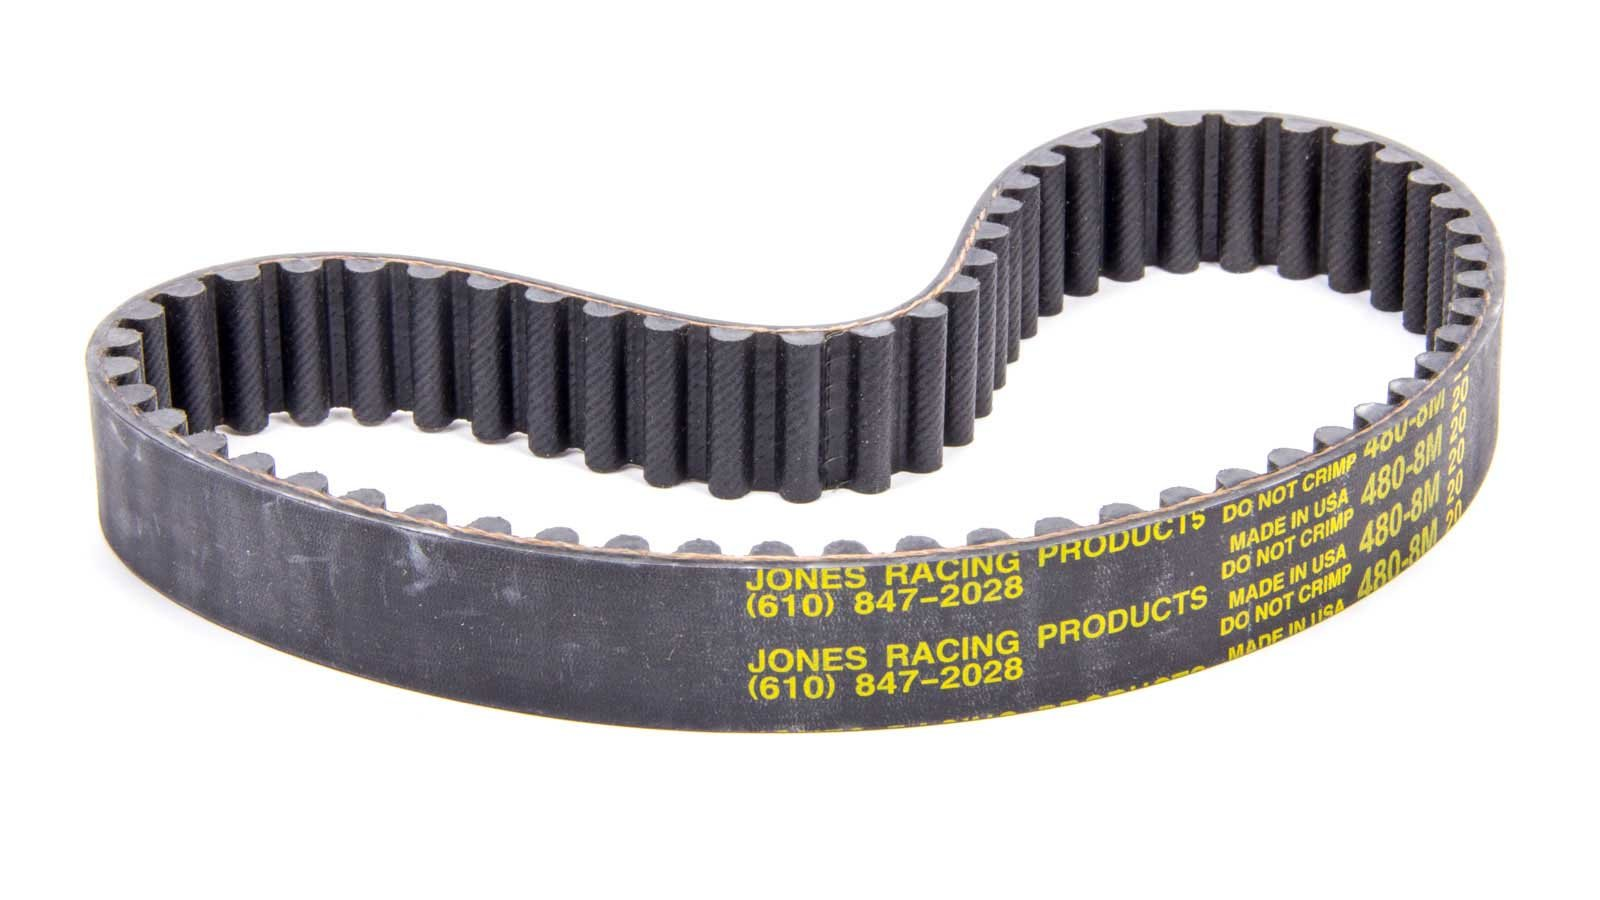 Jones Racing Products 480-20HD HTD Belt